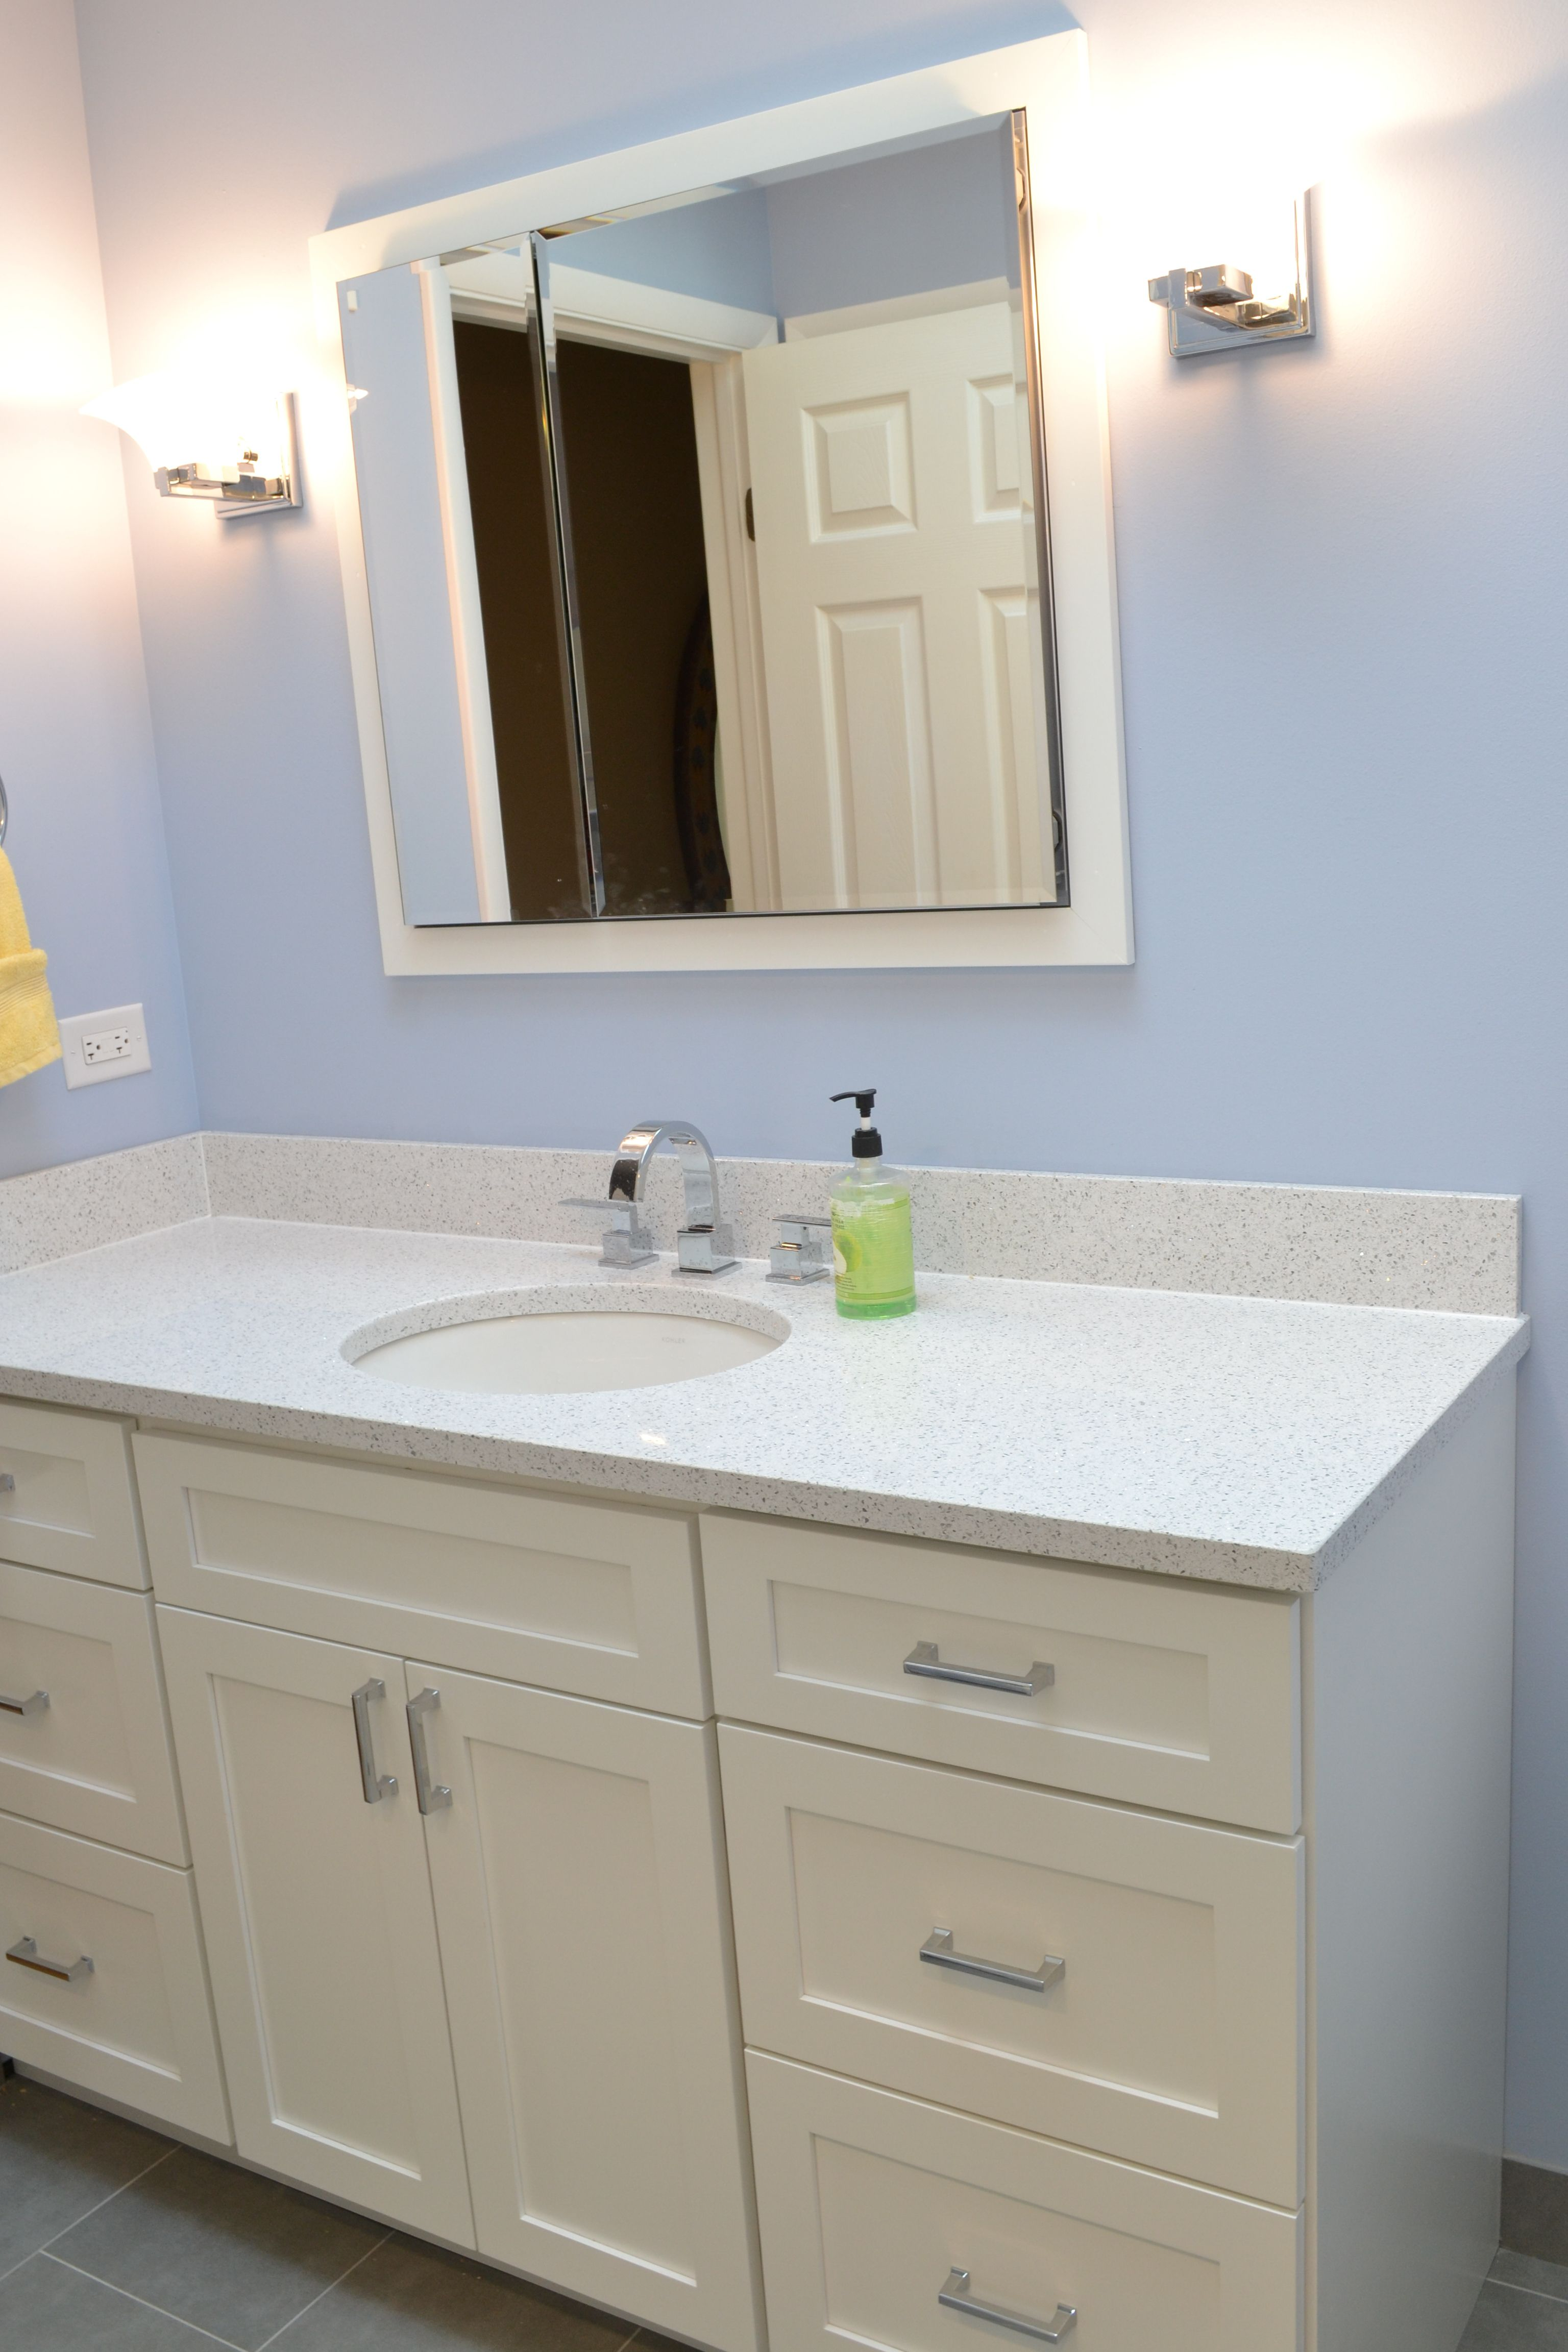 Cambria Quartz Color Whitney Paired With Painted White Vanity Cabinets Bathroom Cabinet Colors Custom Bathroom Vanity Main Bathroom Ideas